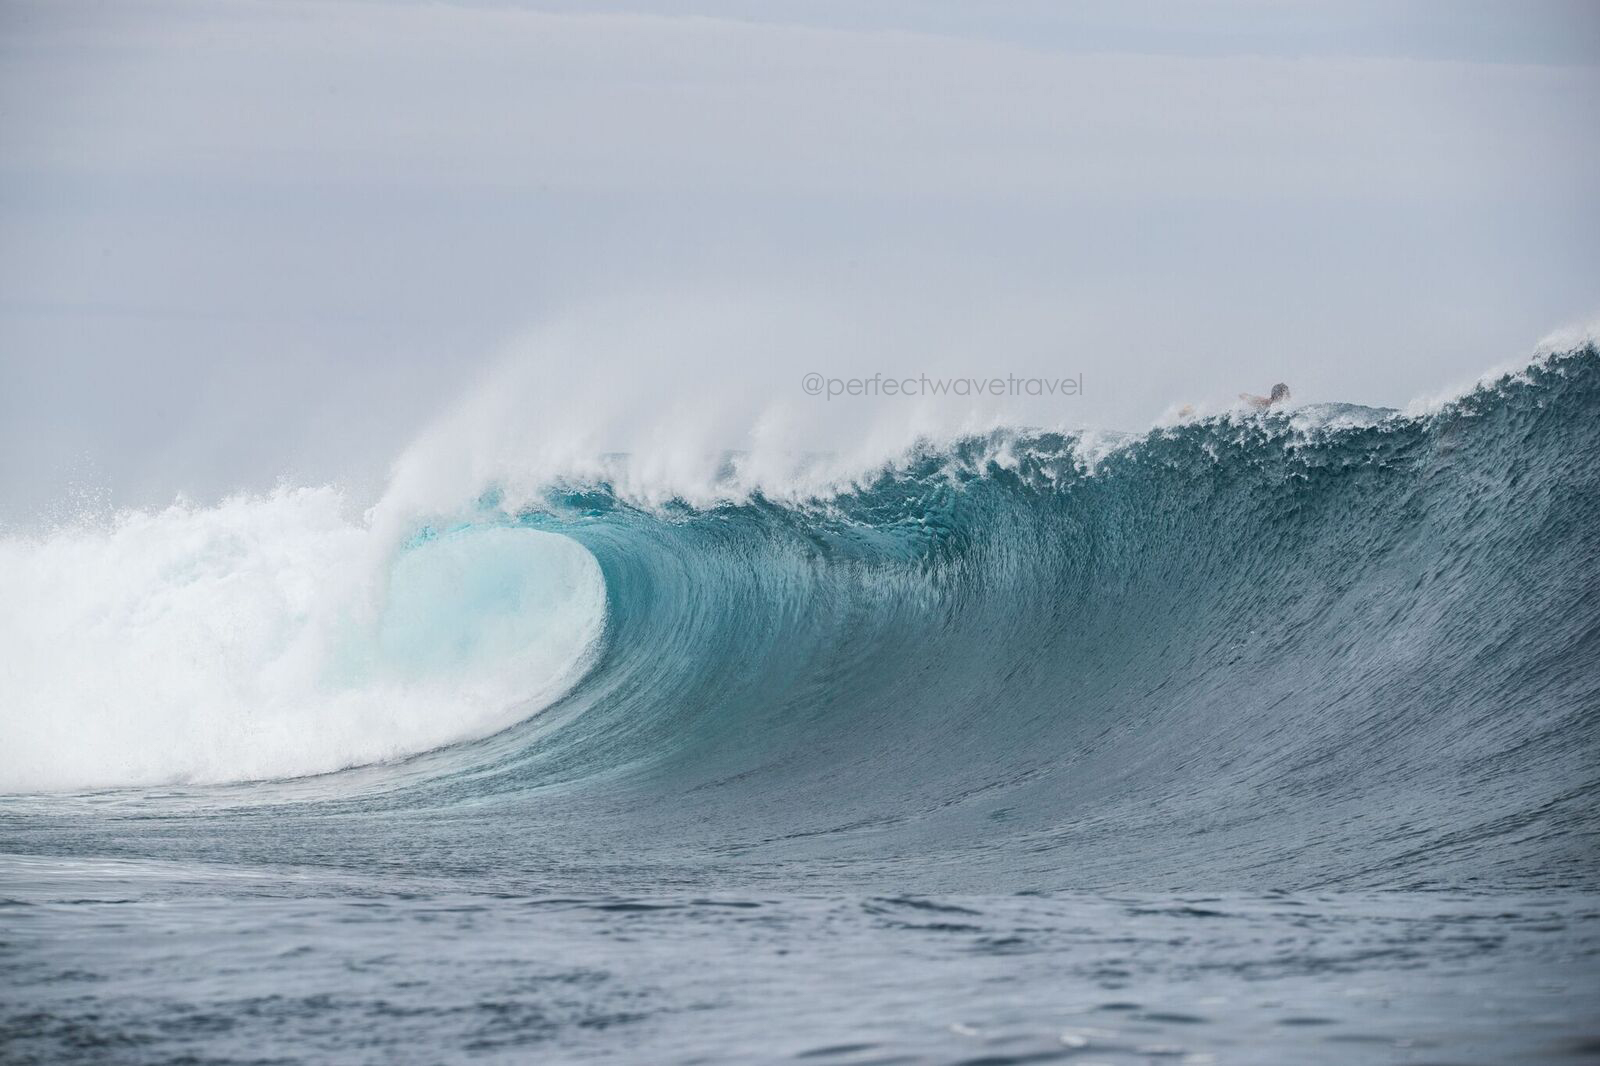 9-when-the-swell-arrives-at-cloudbreak-but-your-too-sure-where-ot-sit-another-empty-rolls-on-through_preview